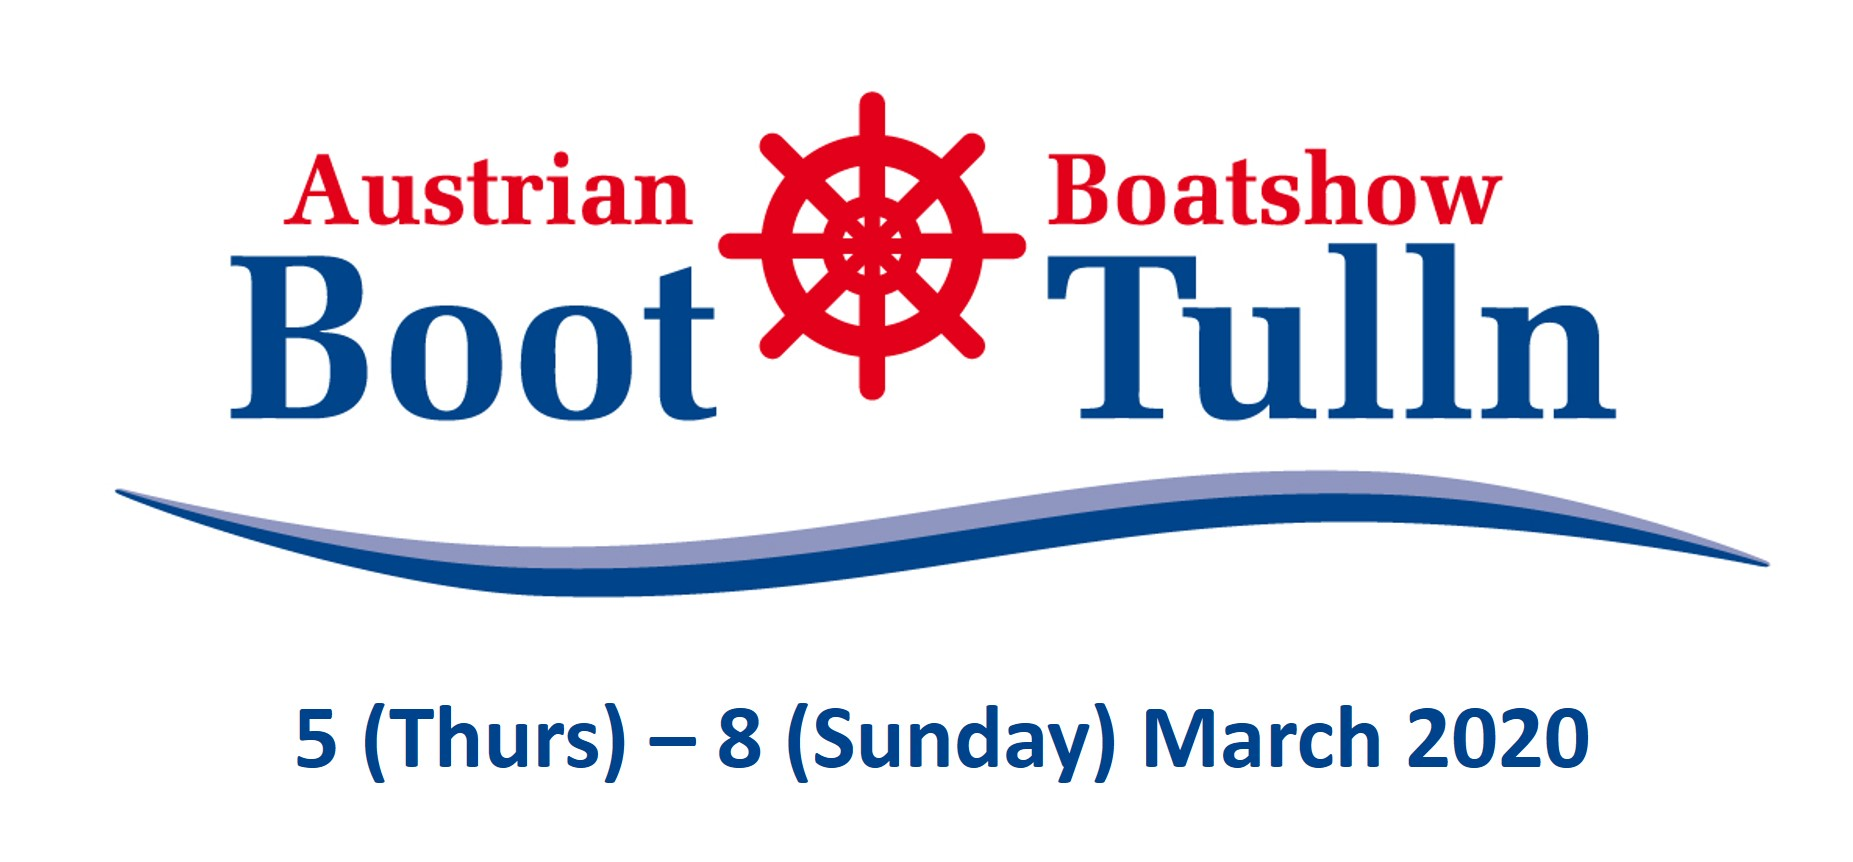 Austrian Boat Show: 5-8 March, 2020